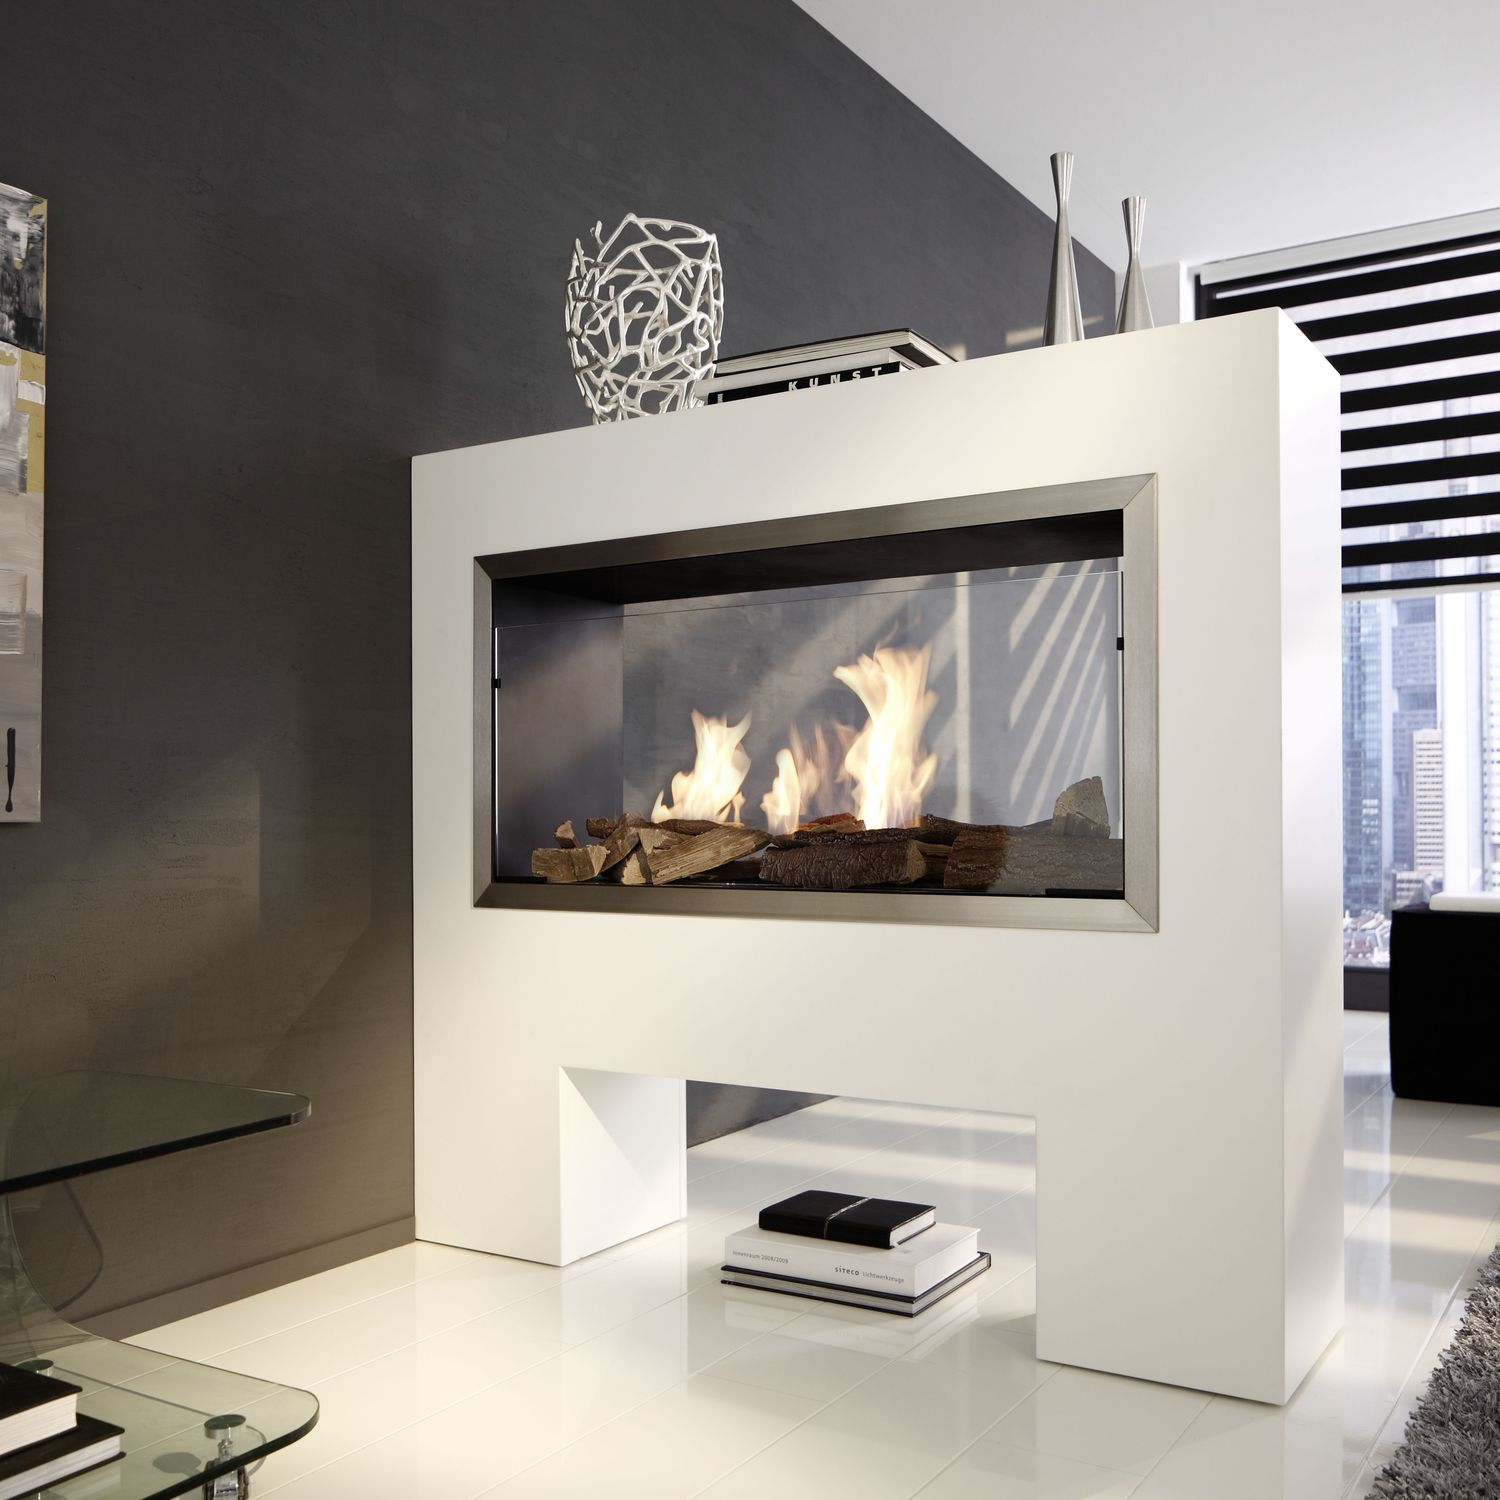 Ethanol Standkamin Bioethanol Fireplace Contemporary Open Hearth Double Sided